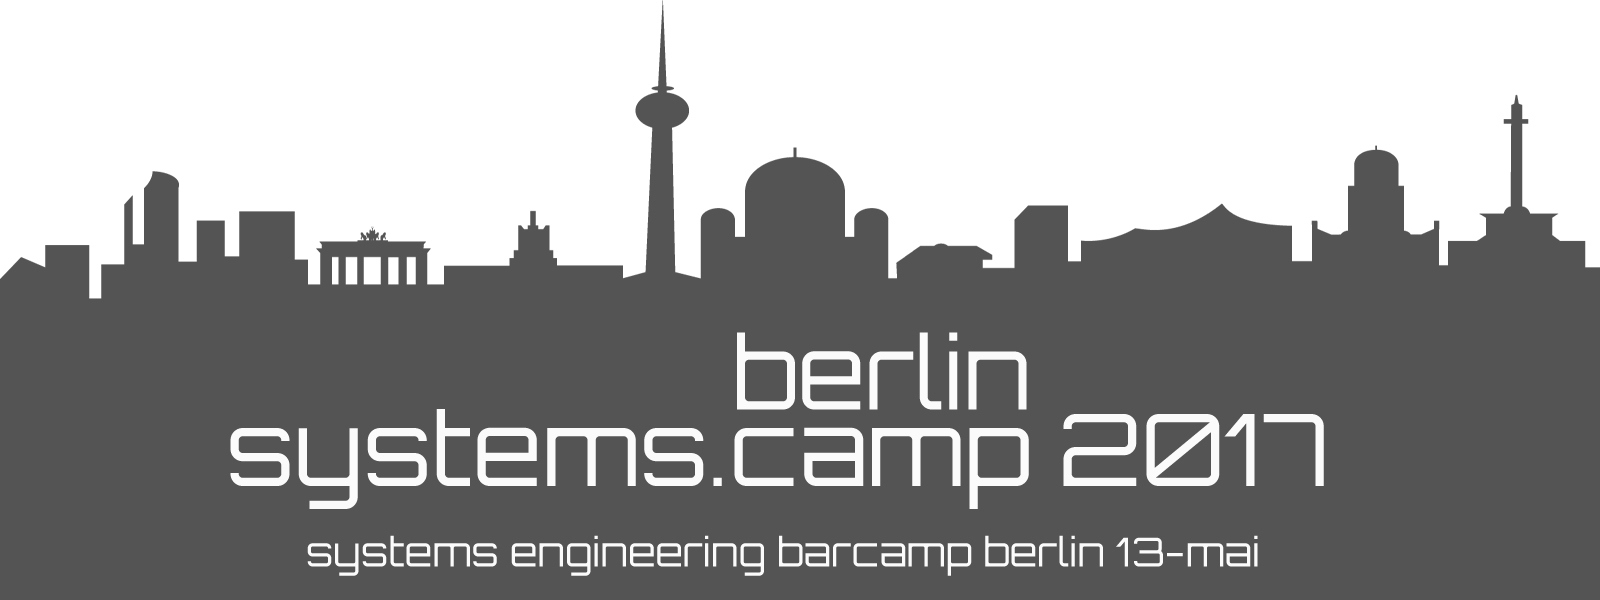 Das Systems Engineering Barcamp